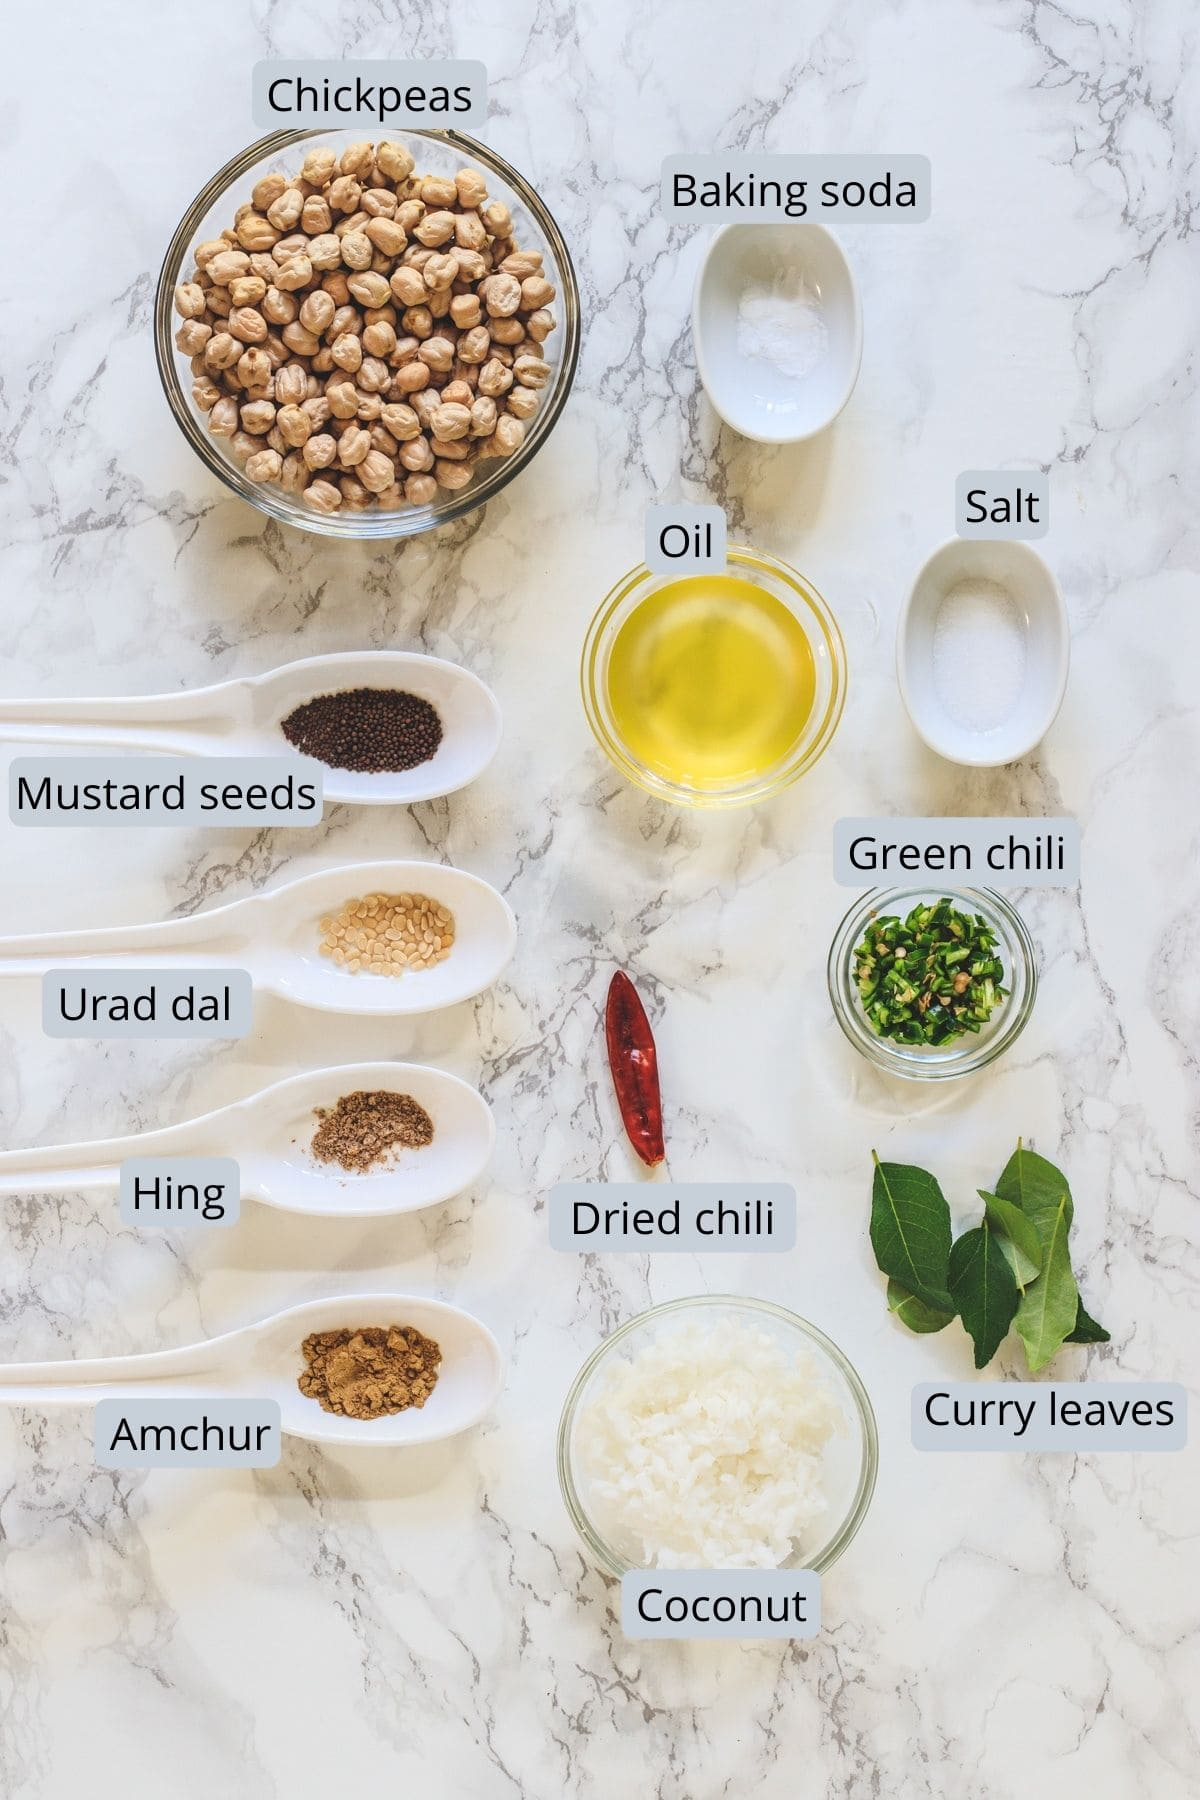 Ingredients used in channa sundal includes chickpeas, salt, oil, chilies, curry leaves and spices.